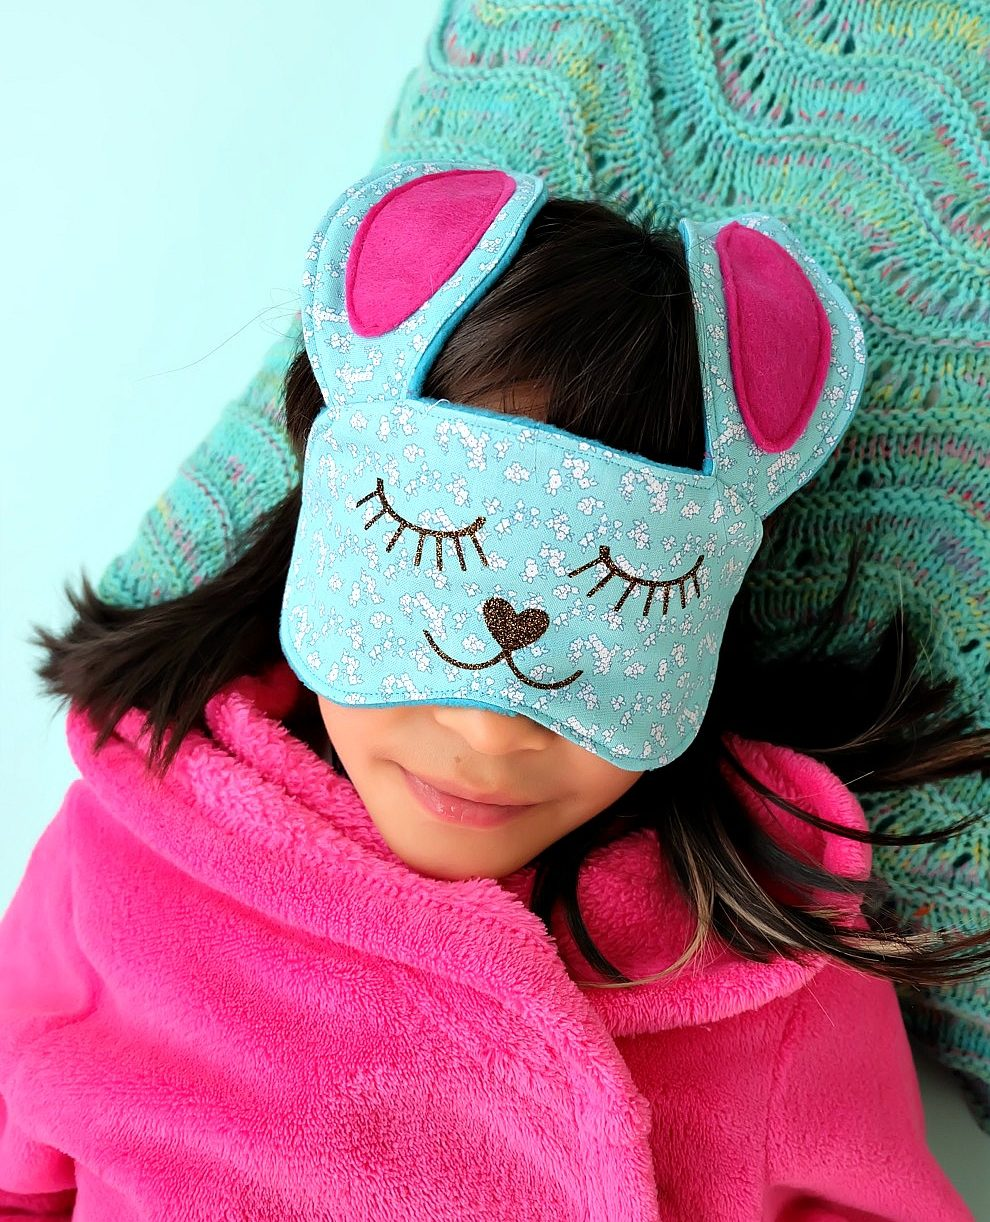 50 Easy Handmade Gift Ideas You'll Love: Bunny Sleep Mask Sewing Tutorial